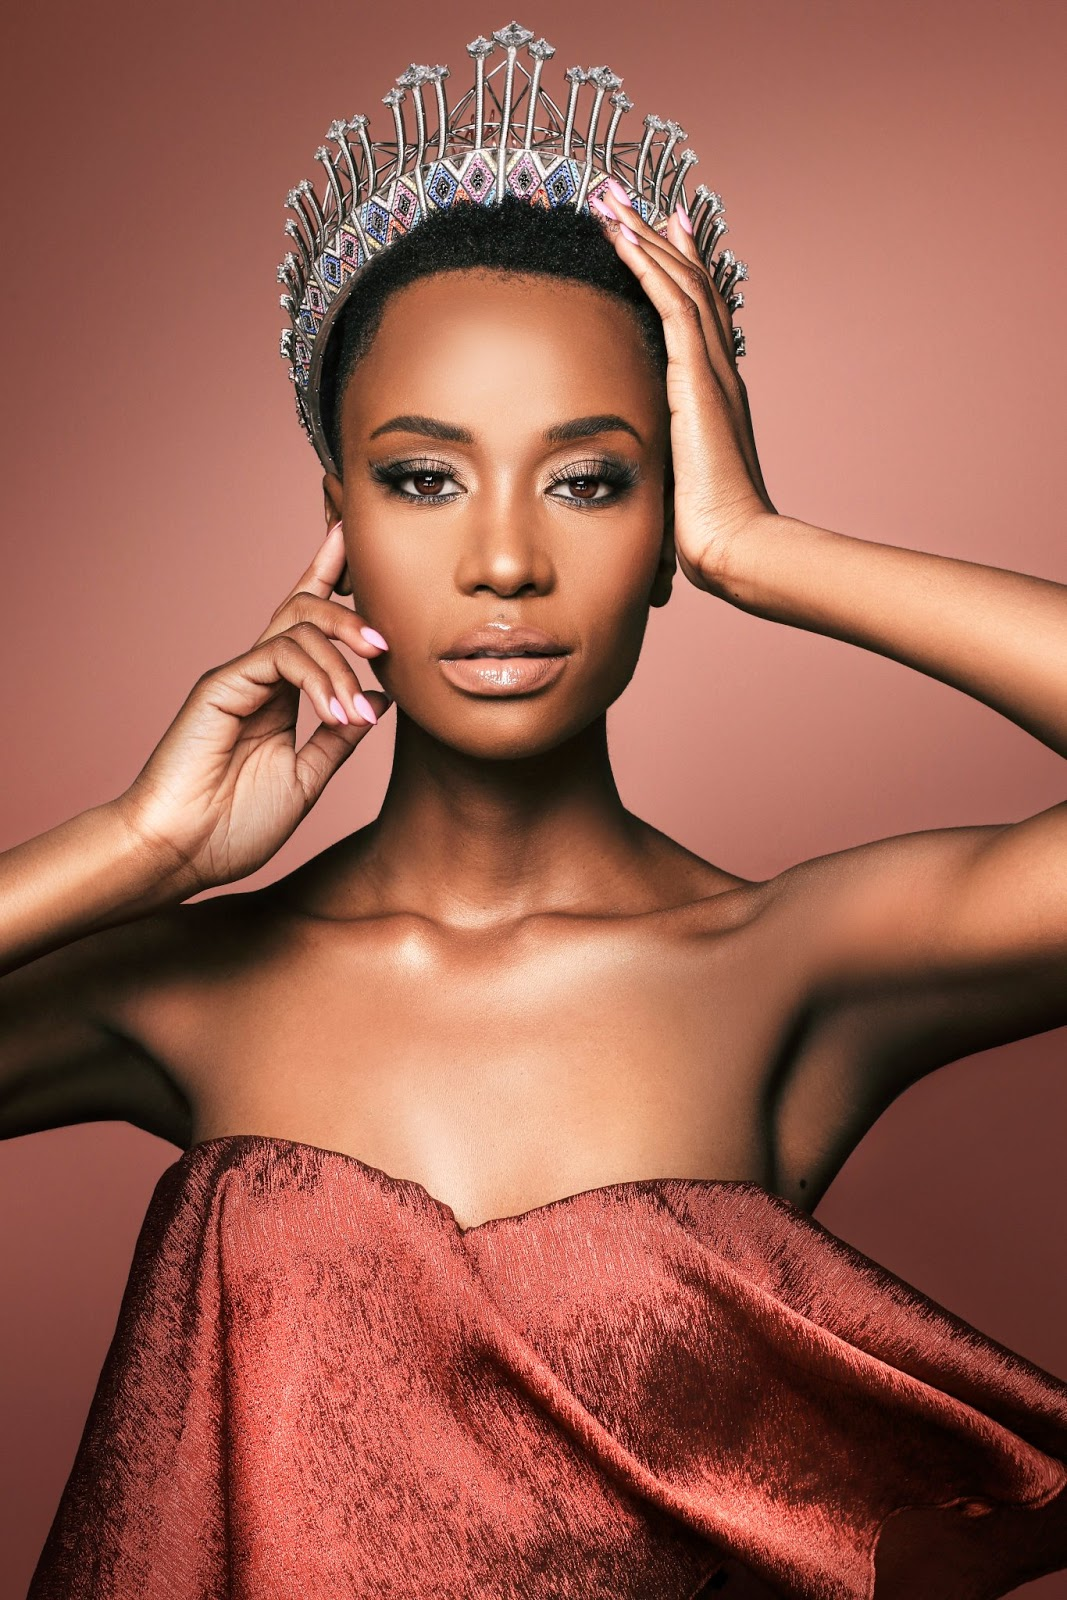 From Mzansi To Miss Universe – Zozibini Tunzi's Road To The Ultimate Pageant!